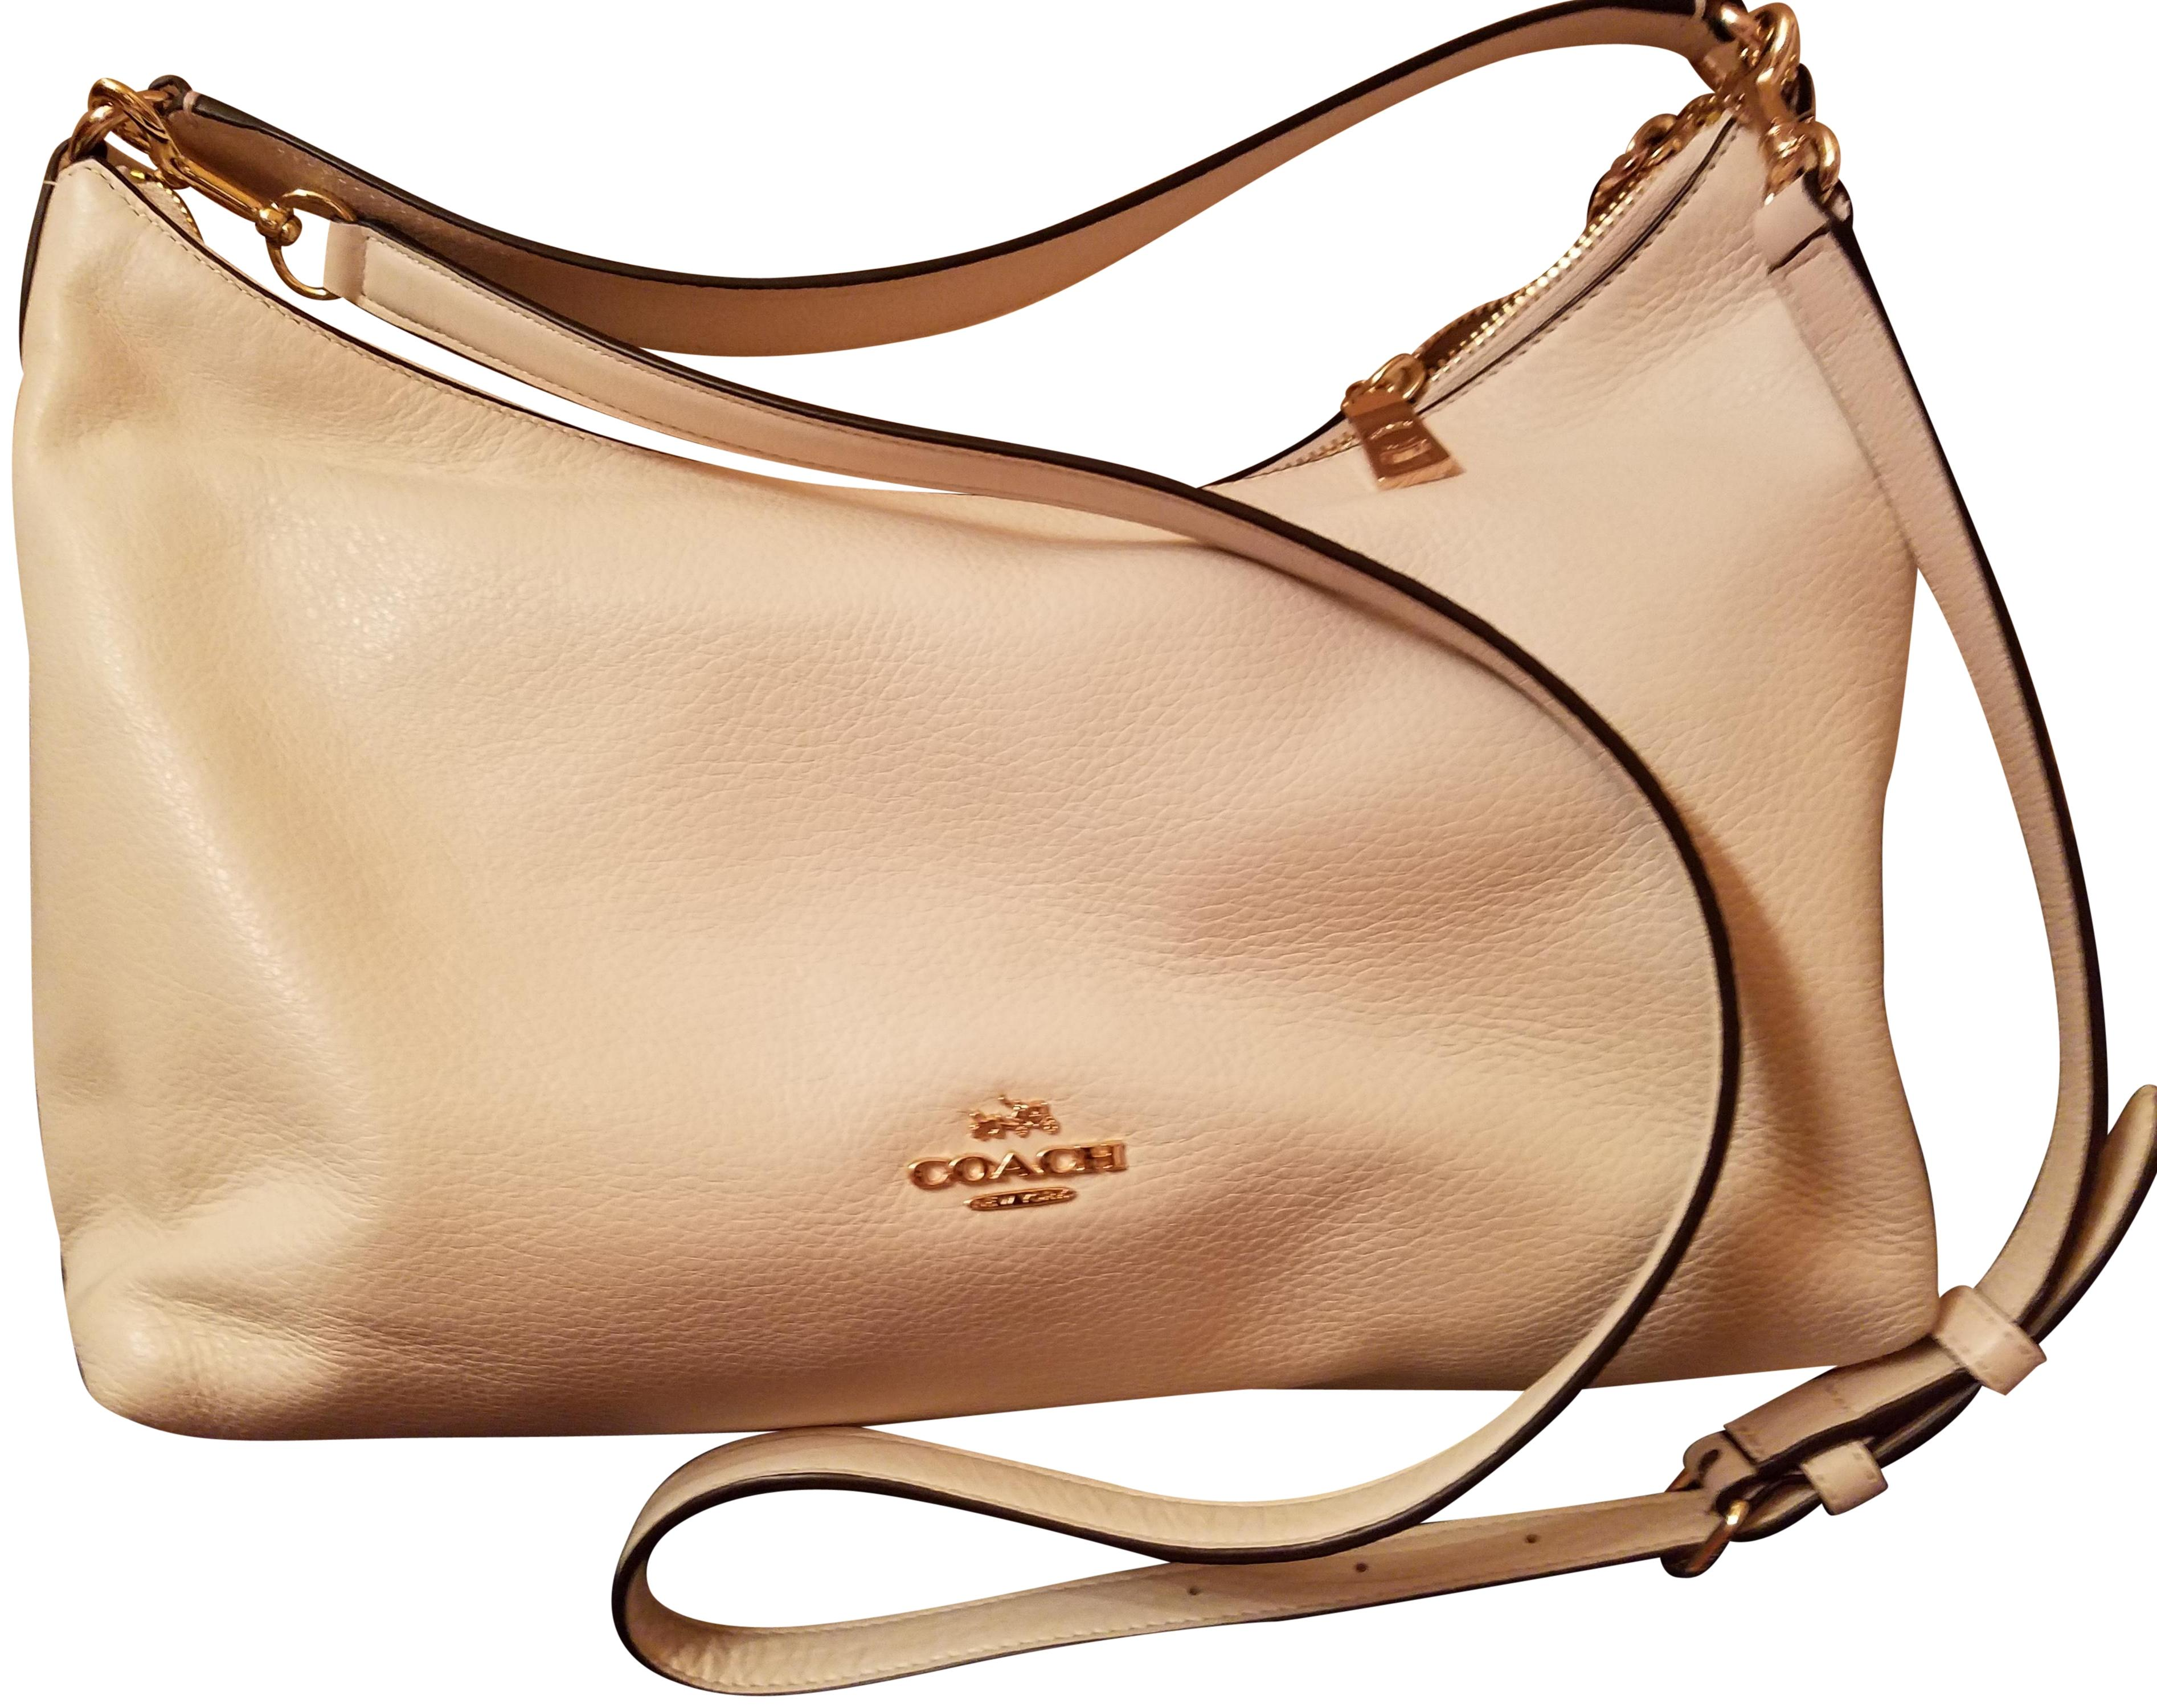 09797fb7ea14f ... best price coach crossbody shoulder hobo bag 46b3d e76be